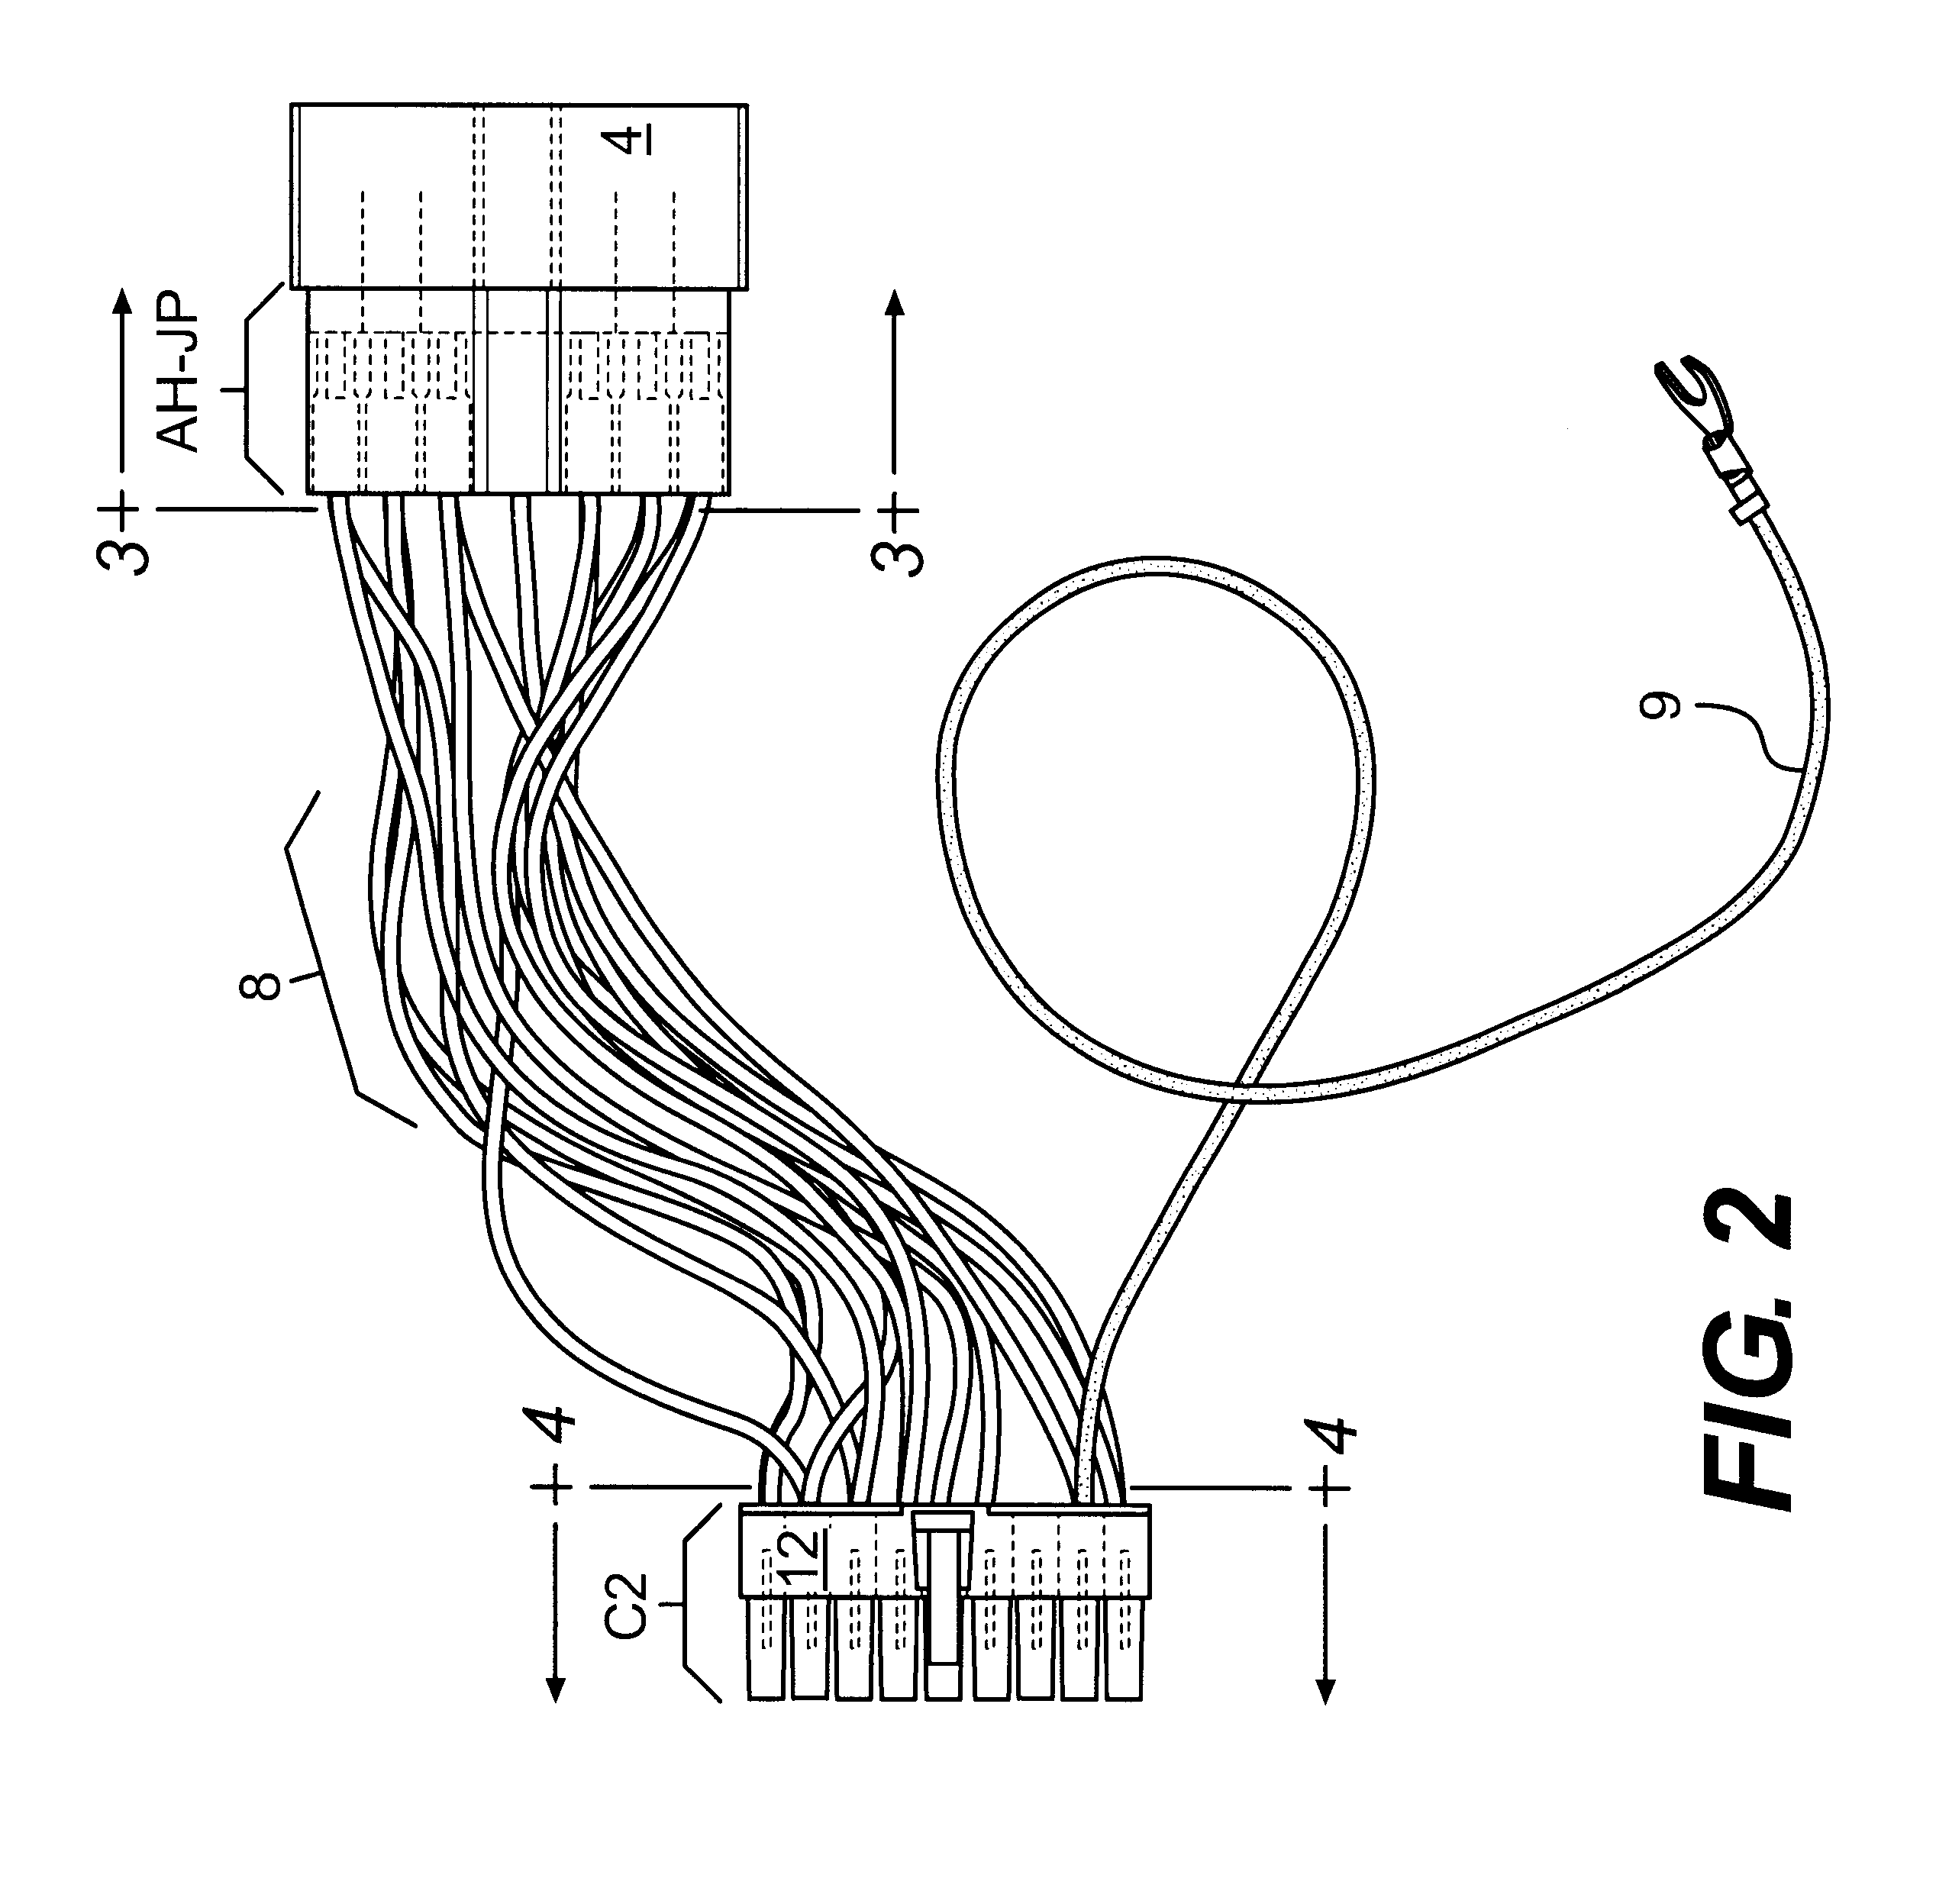 US06531657 20030311 D00002 patent us6531657 adapter wire harness for installing different wire harness drawing at eliteediting.co